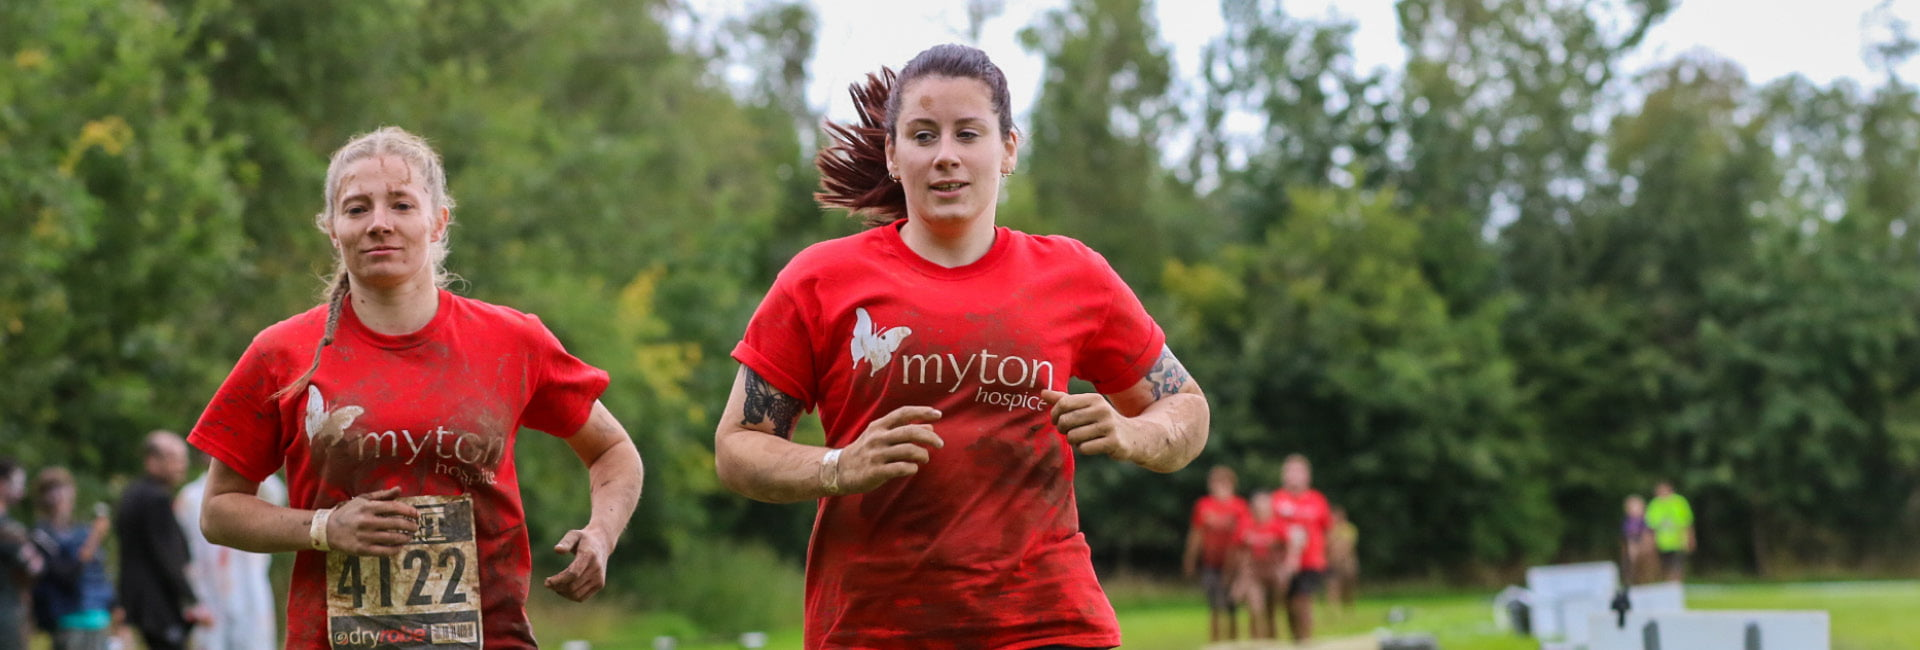 Mud 7 2019 - Challenge Event - The Myton Hospices